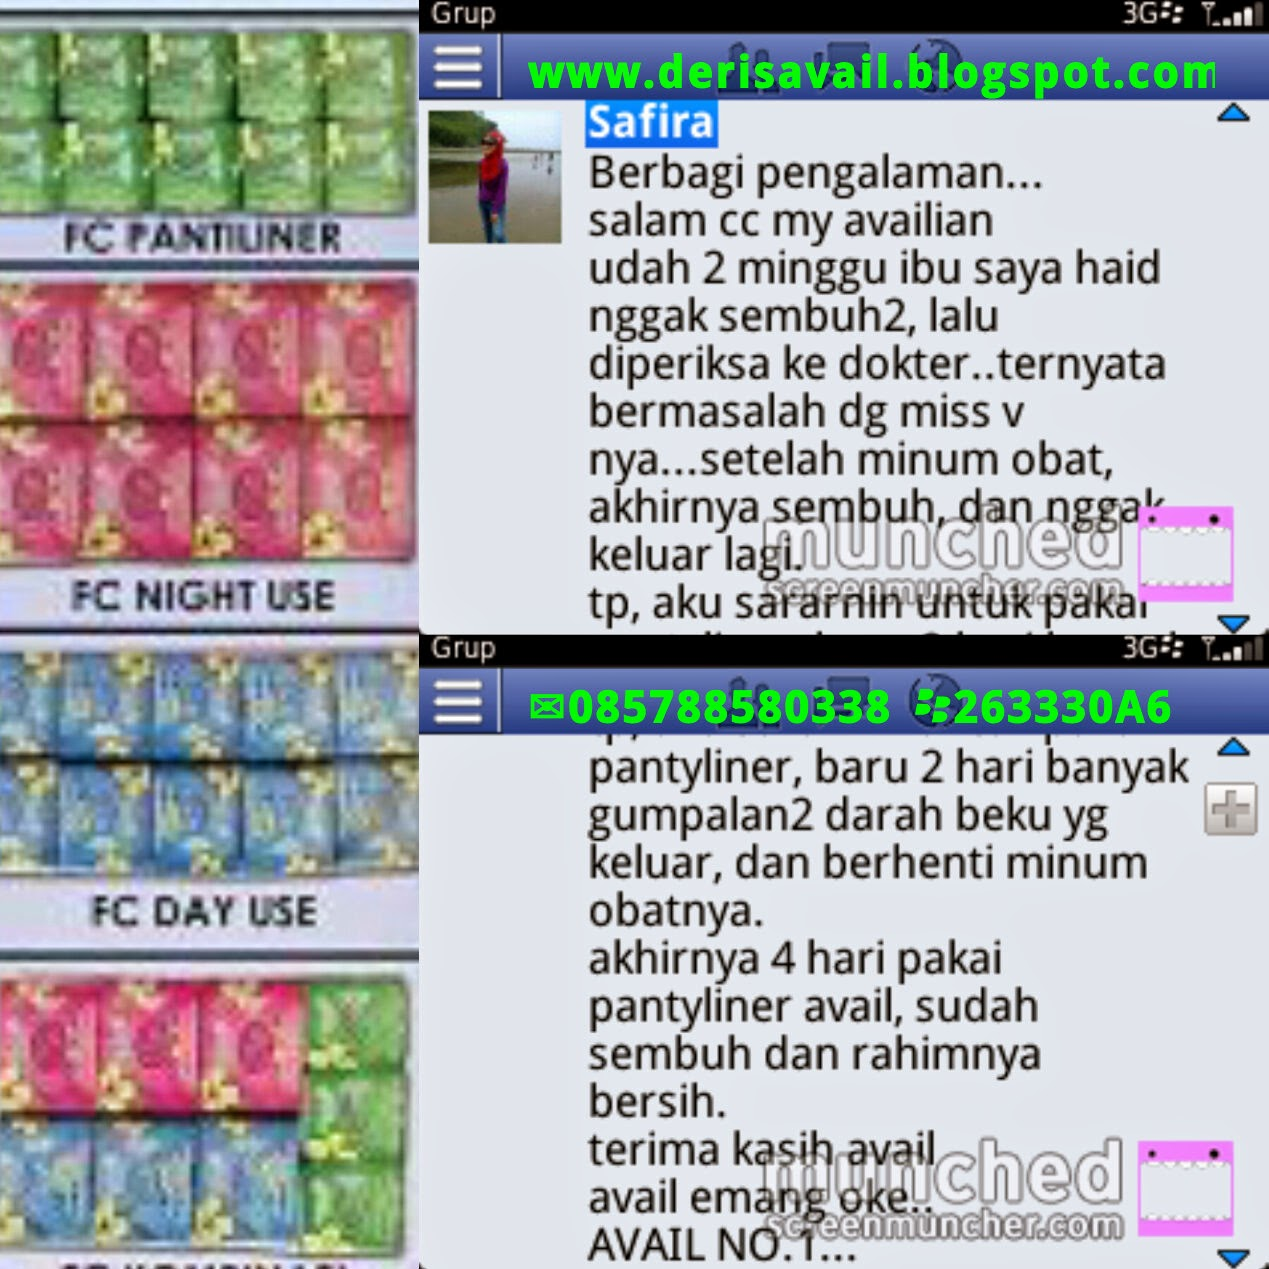 Testimoni Produk Avail Always Very Active In Live Pentiliner